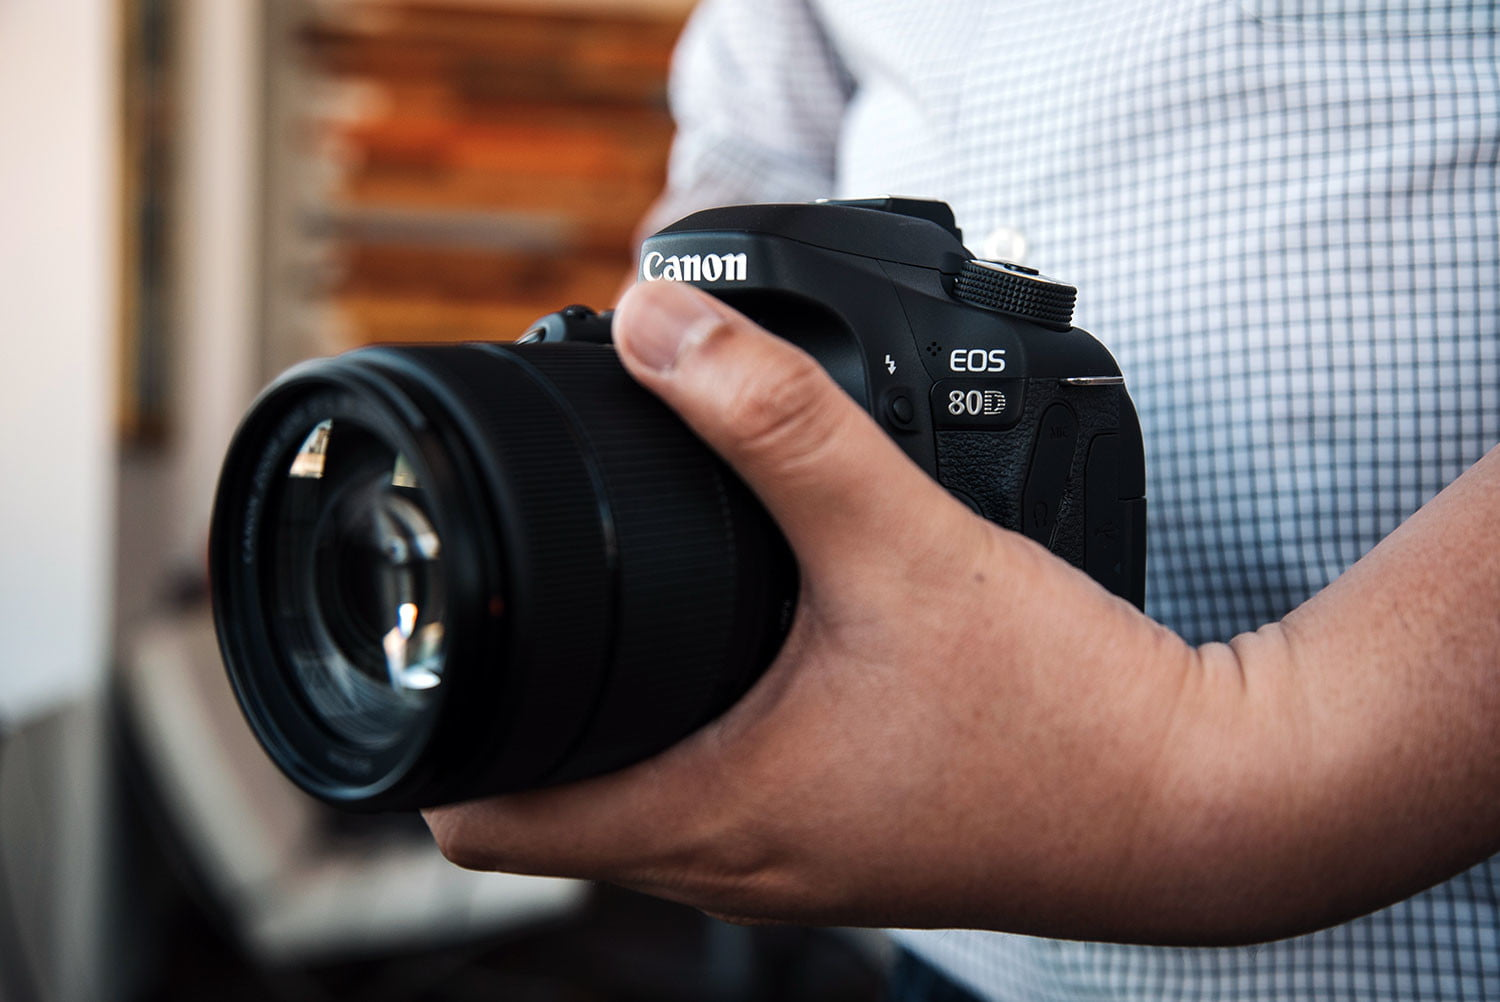 Canon Eos 80d Dslr Camera Hands On Review Digital Trends Basic Controls Unleashed